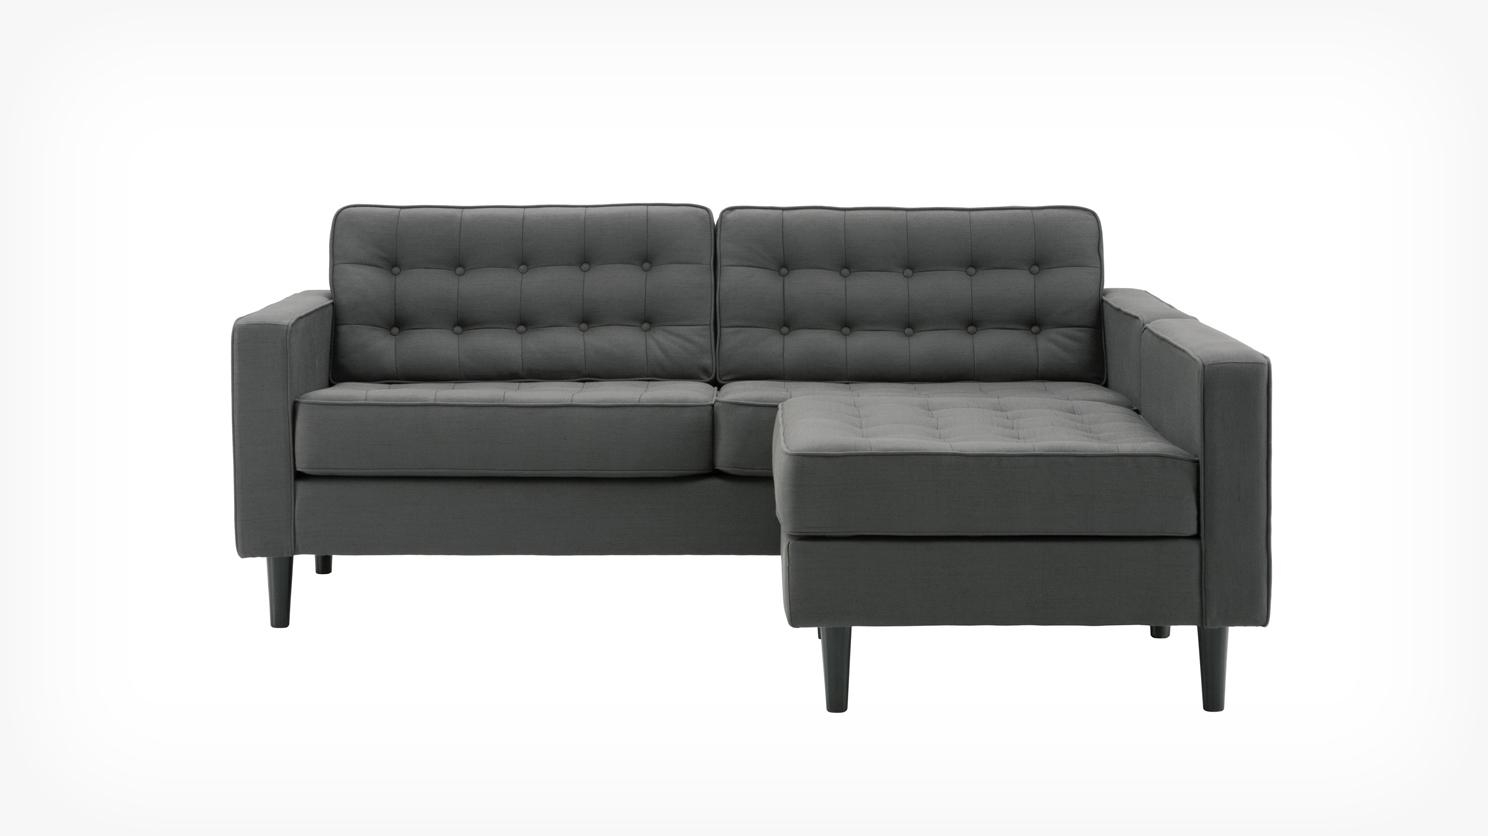 Eq3 | Reverie Apartment 2 Piece Sectional Sofa With Chaise – Fabric Inside Apartment Sectional With Chaise (Image 7 of 15)